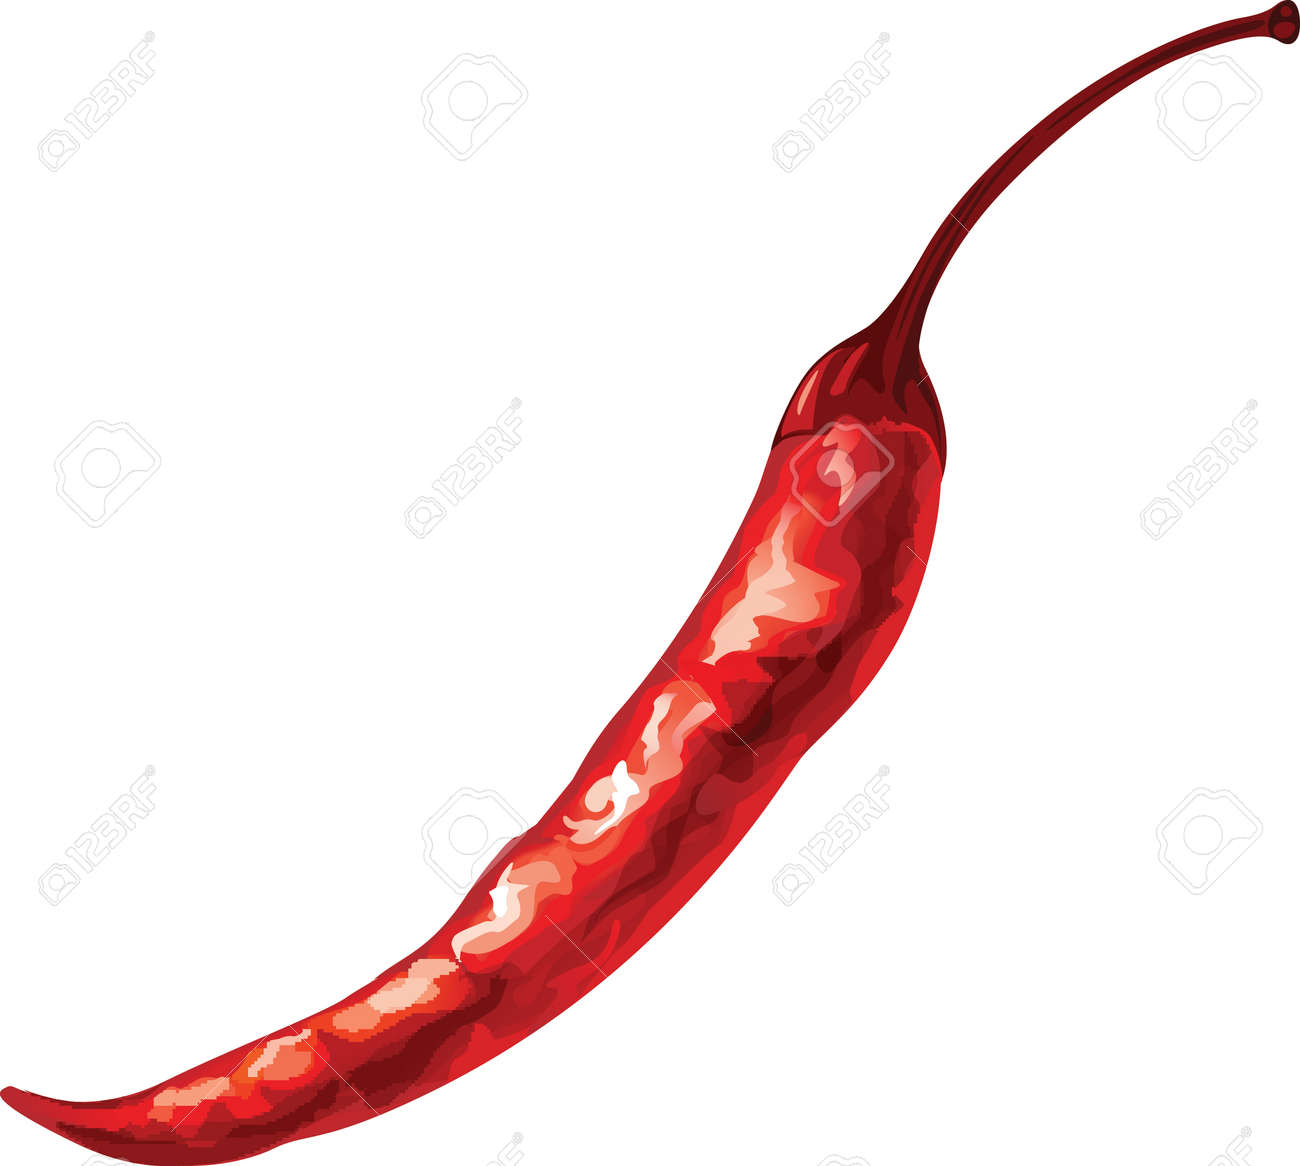 Watercolor vector drawing of red chili pepper. - 58032037